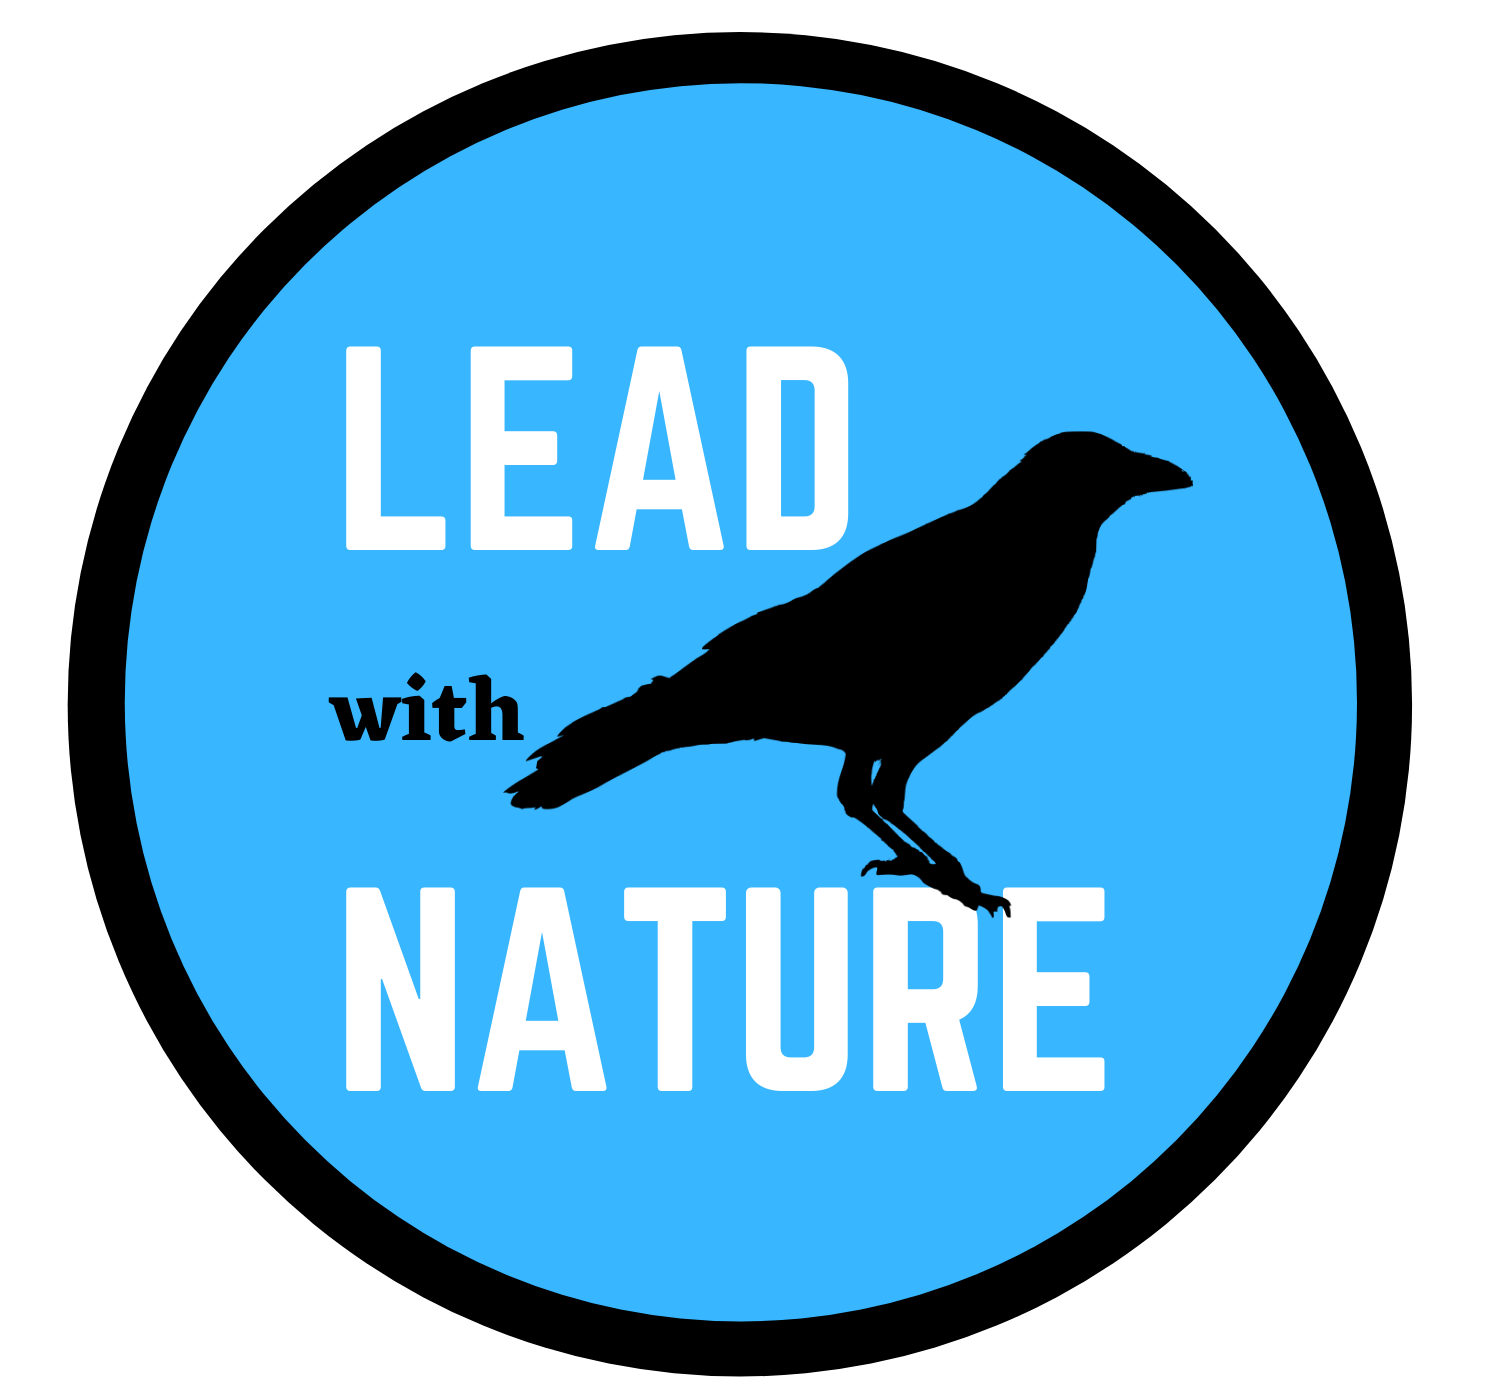 Lead with Nature